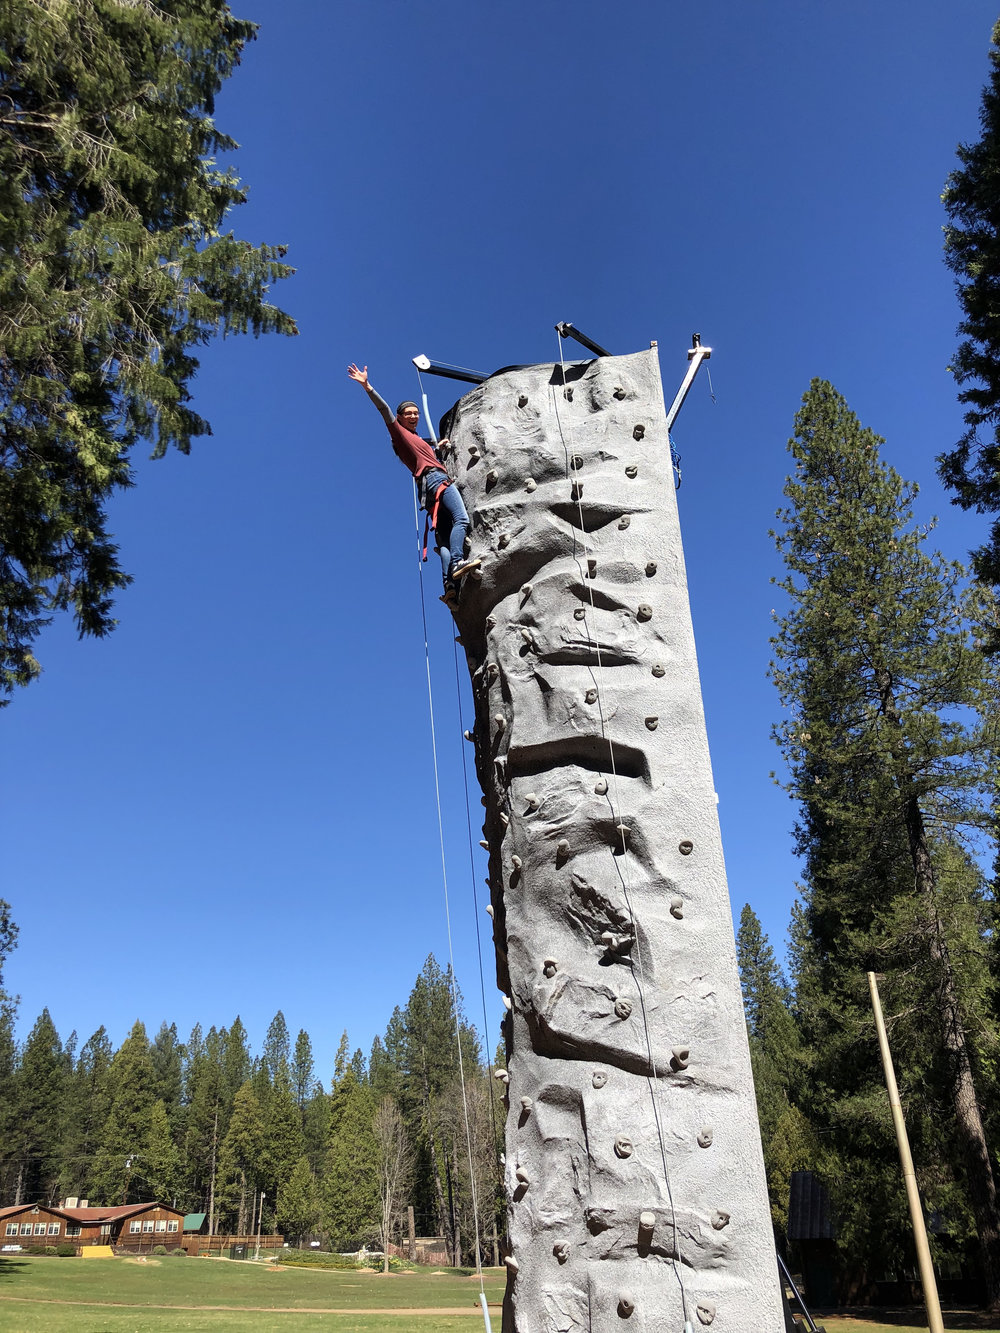 Climbing Wall - Spring is here and Summer is right around the  corner!! We would like to introduce you to our new Climbing Wall!!!!  Can't wait to have our campers here!!!!